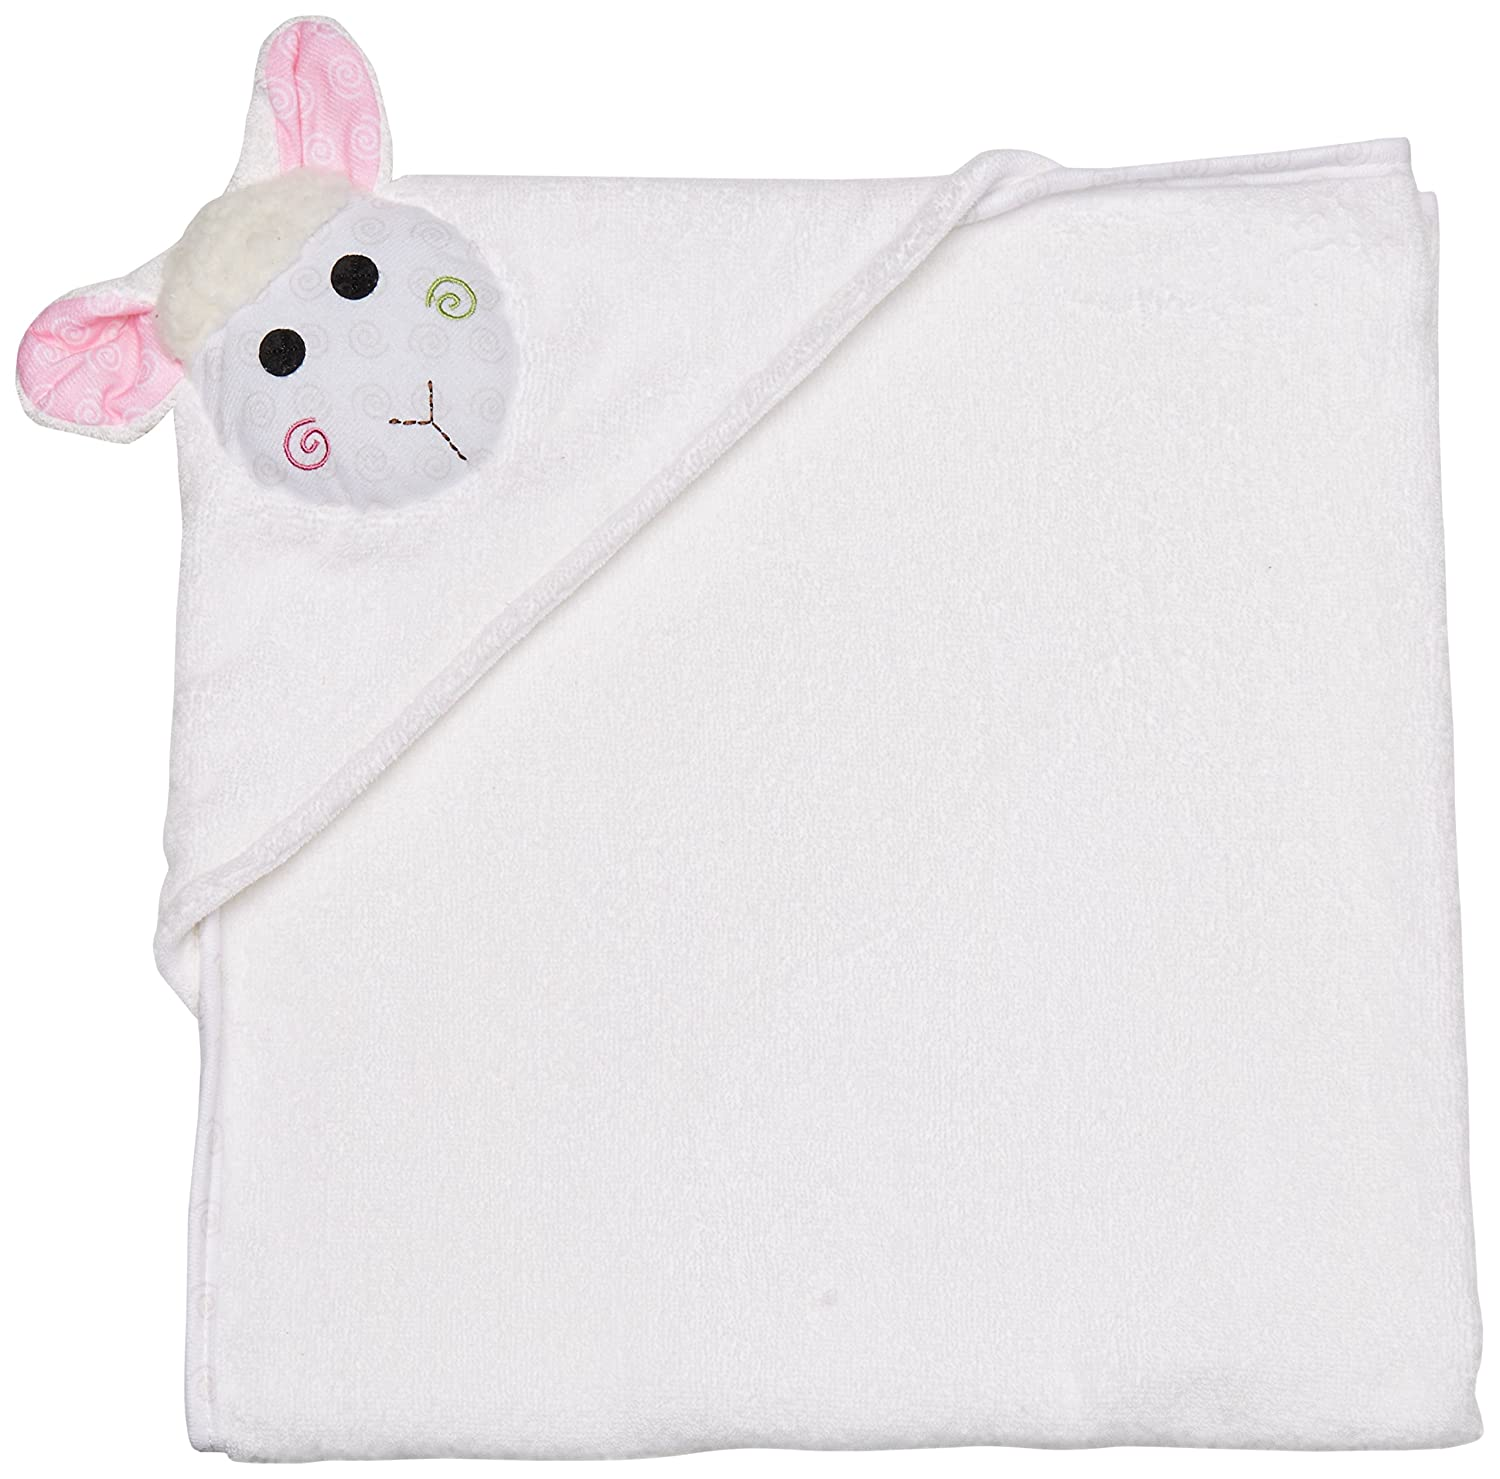 Zoocchini - Baby Towel - Lola the Lamb ZOO1003